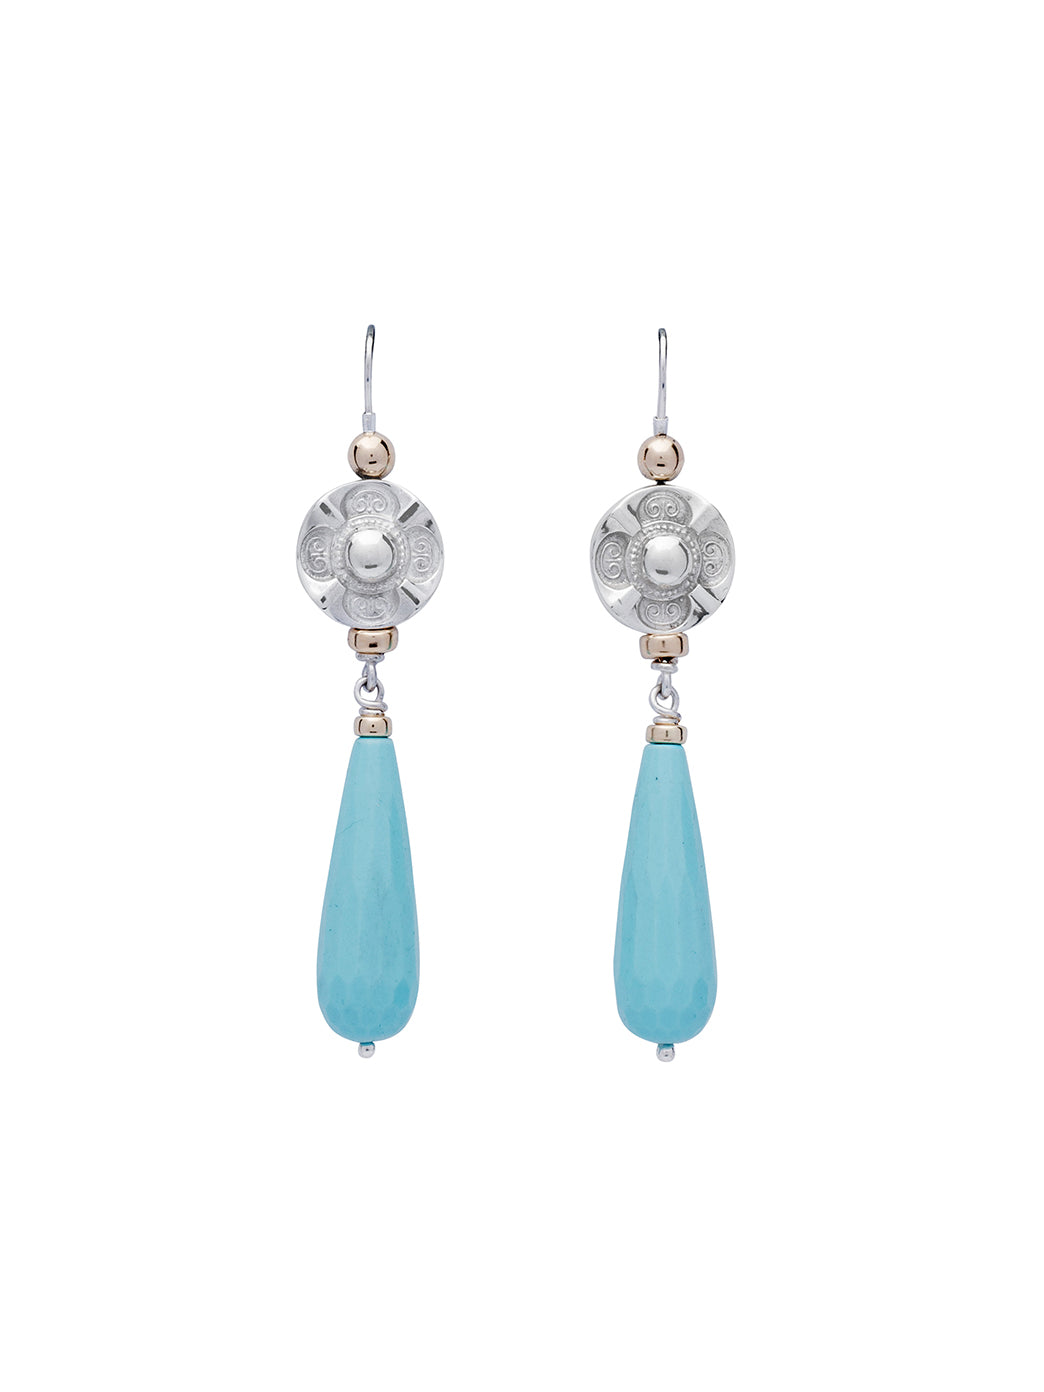 Fiorina Jewellery Deco Drop Earrings Turquoise